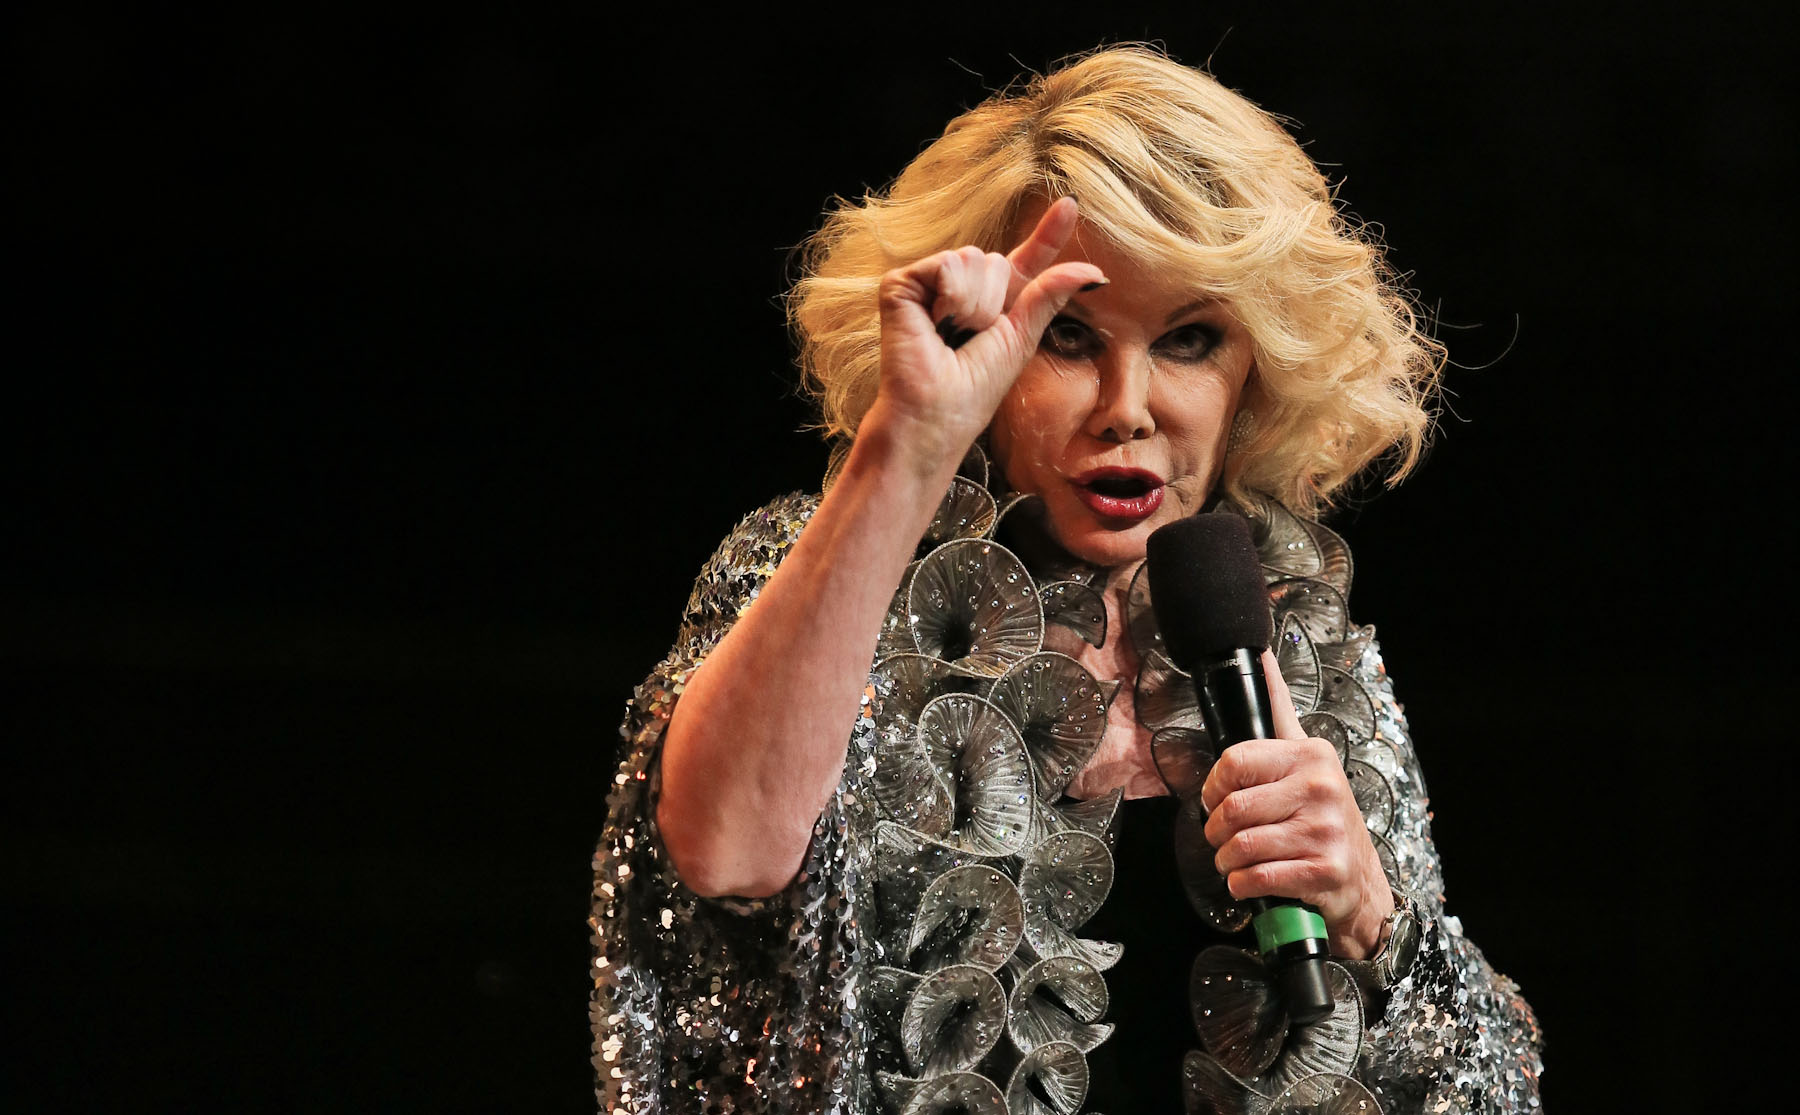 Joan Rivers at the Royal Albert hall by Christie Goodwin